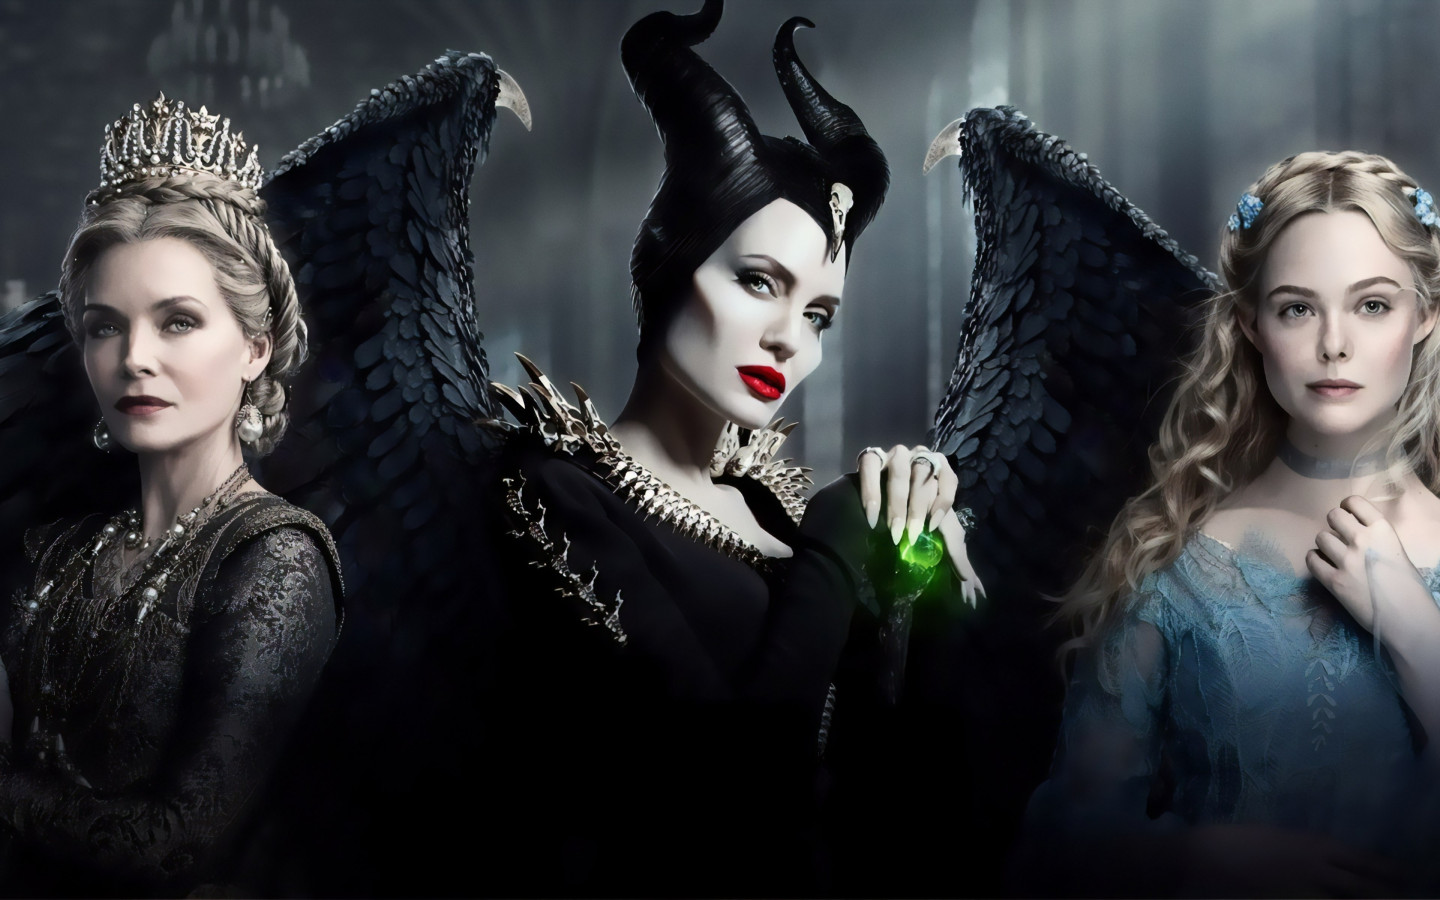 Maleficent: Mistress of Evil wallpaper 1440x900